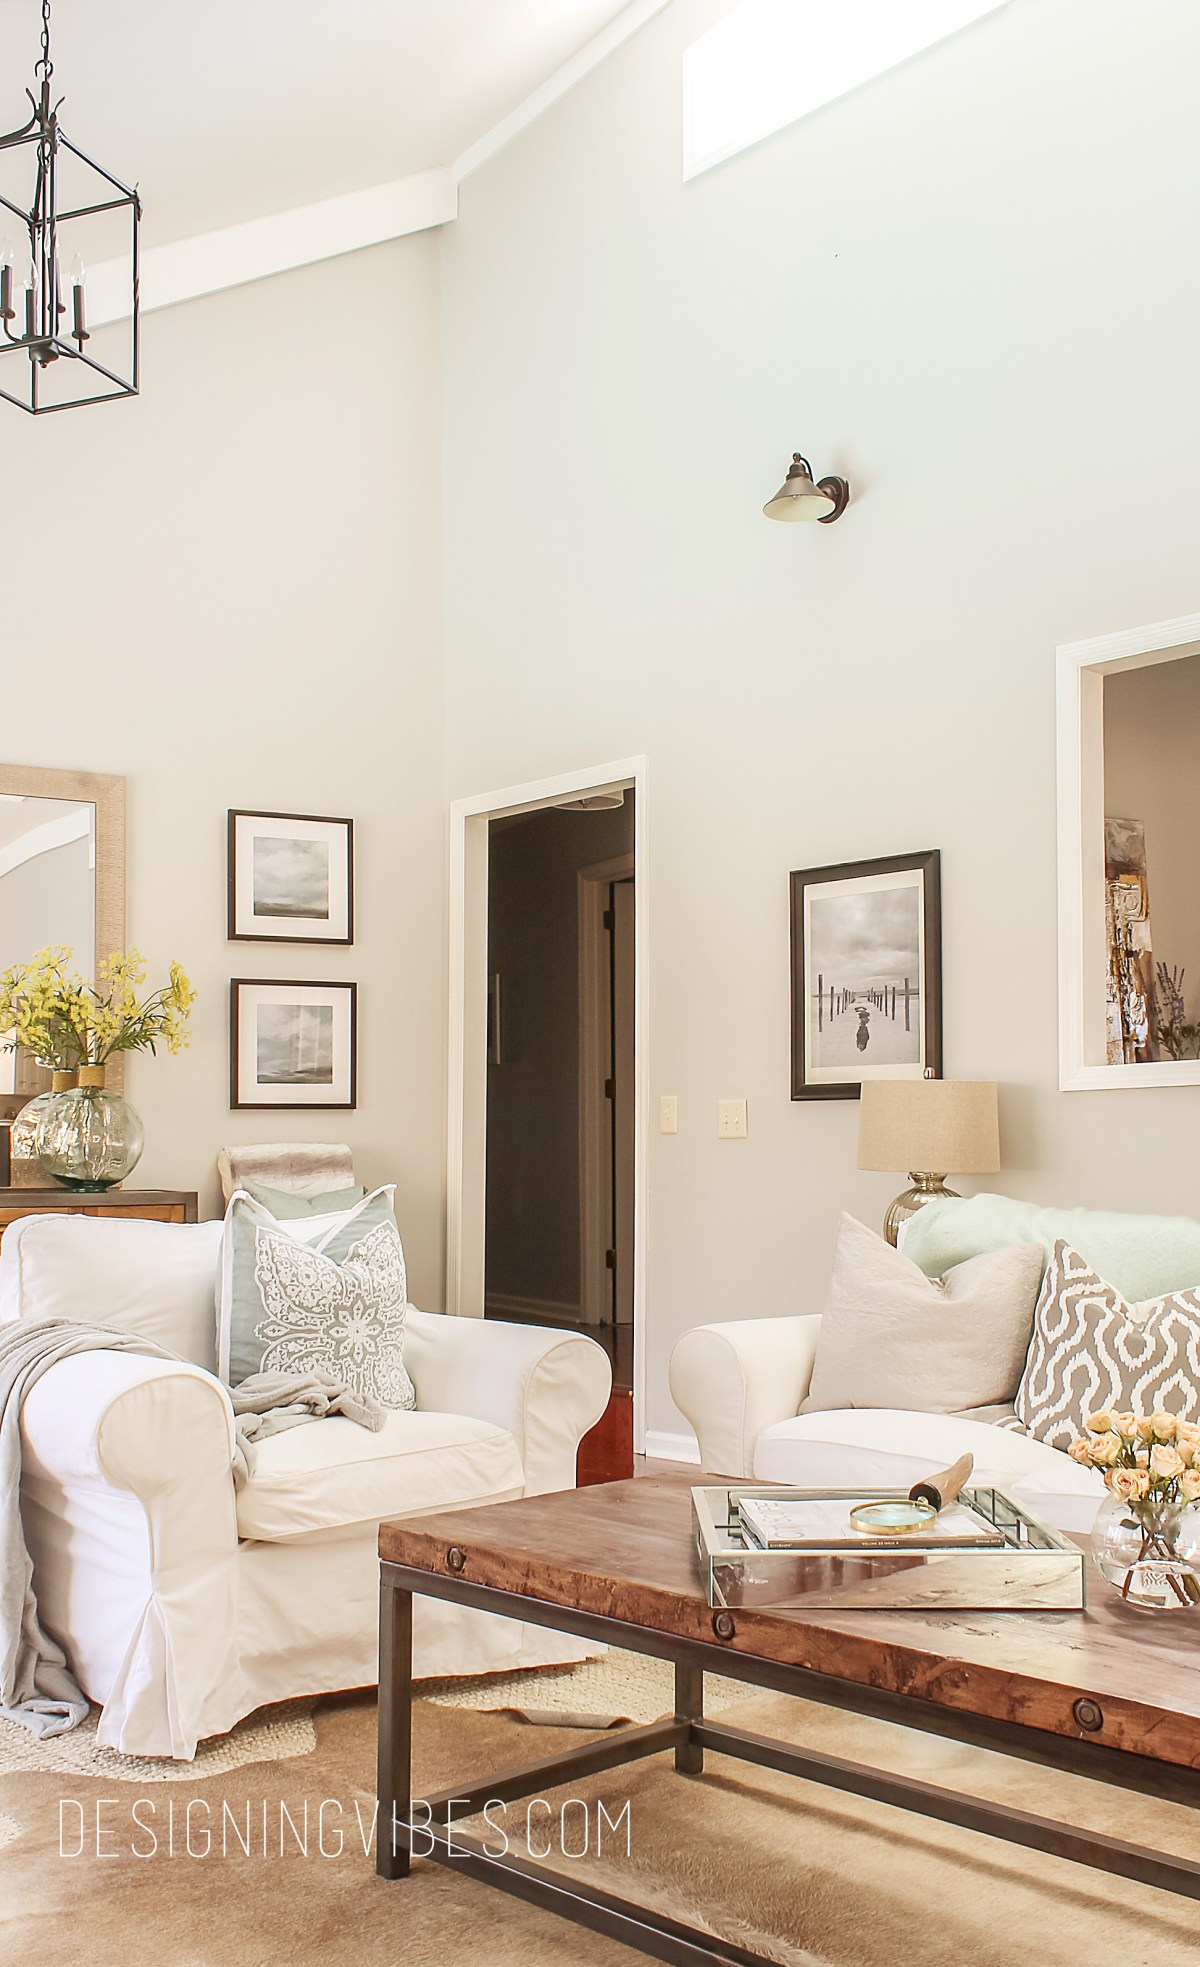 a cheap way to personalize your home decor designing vibes